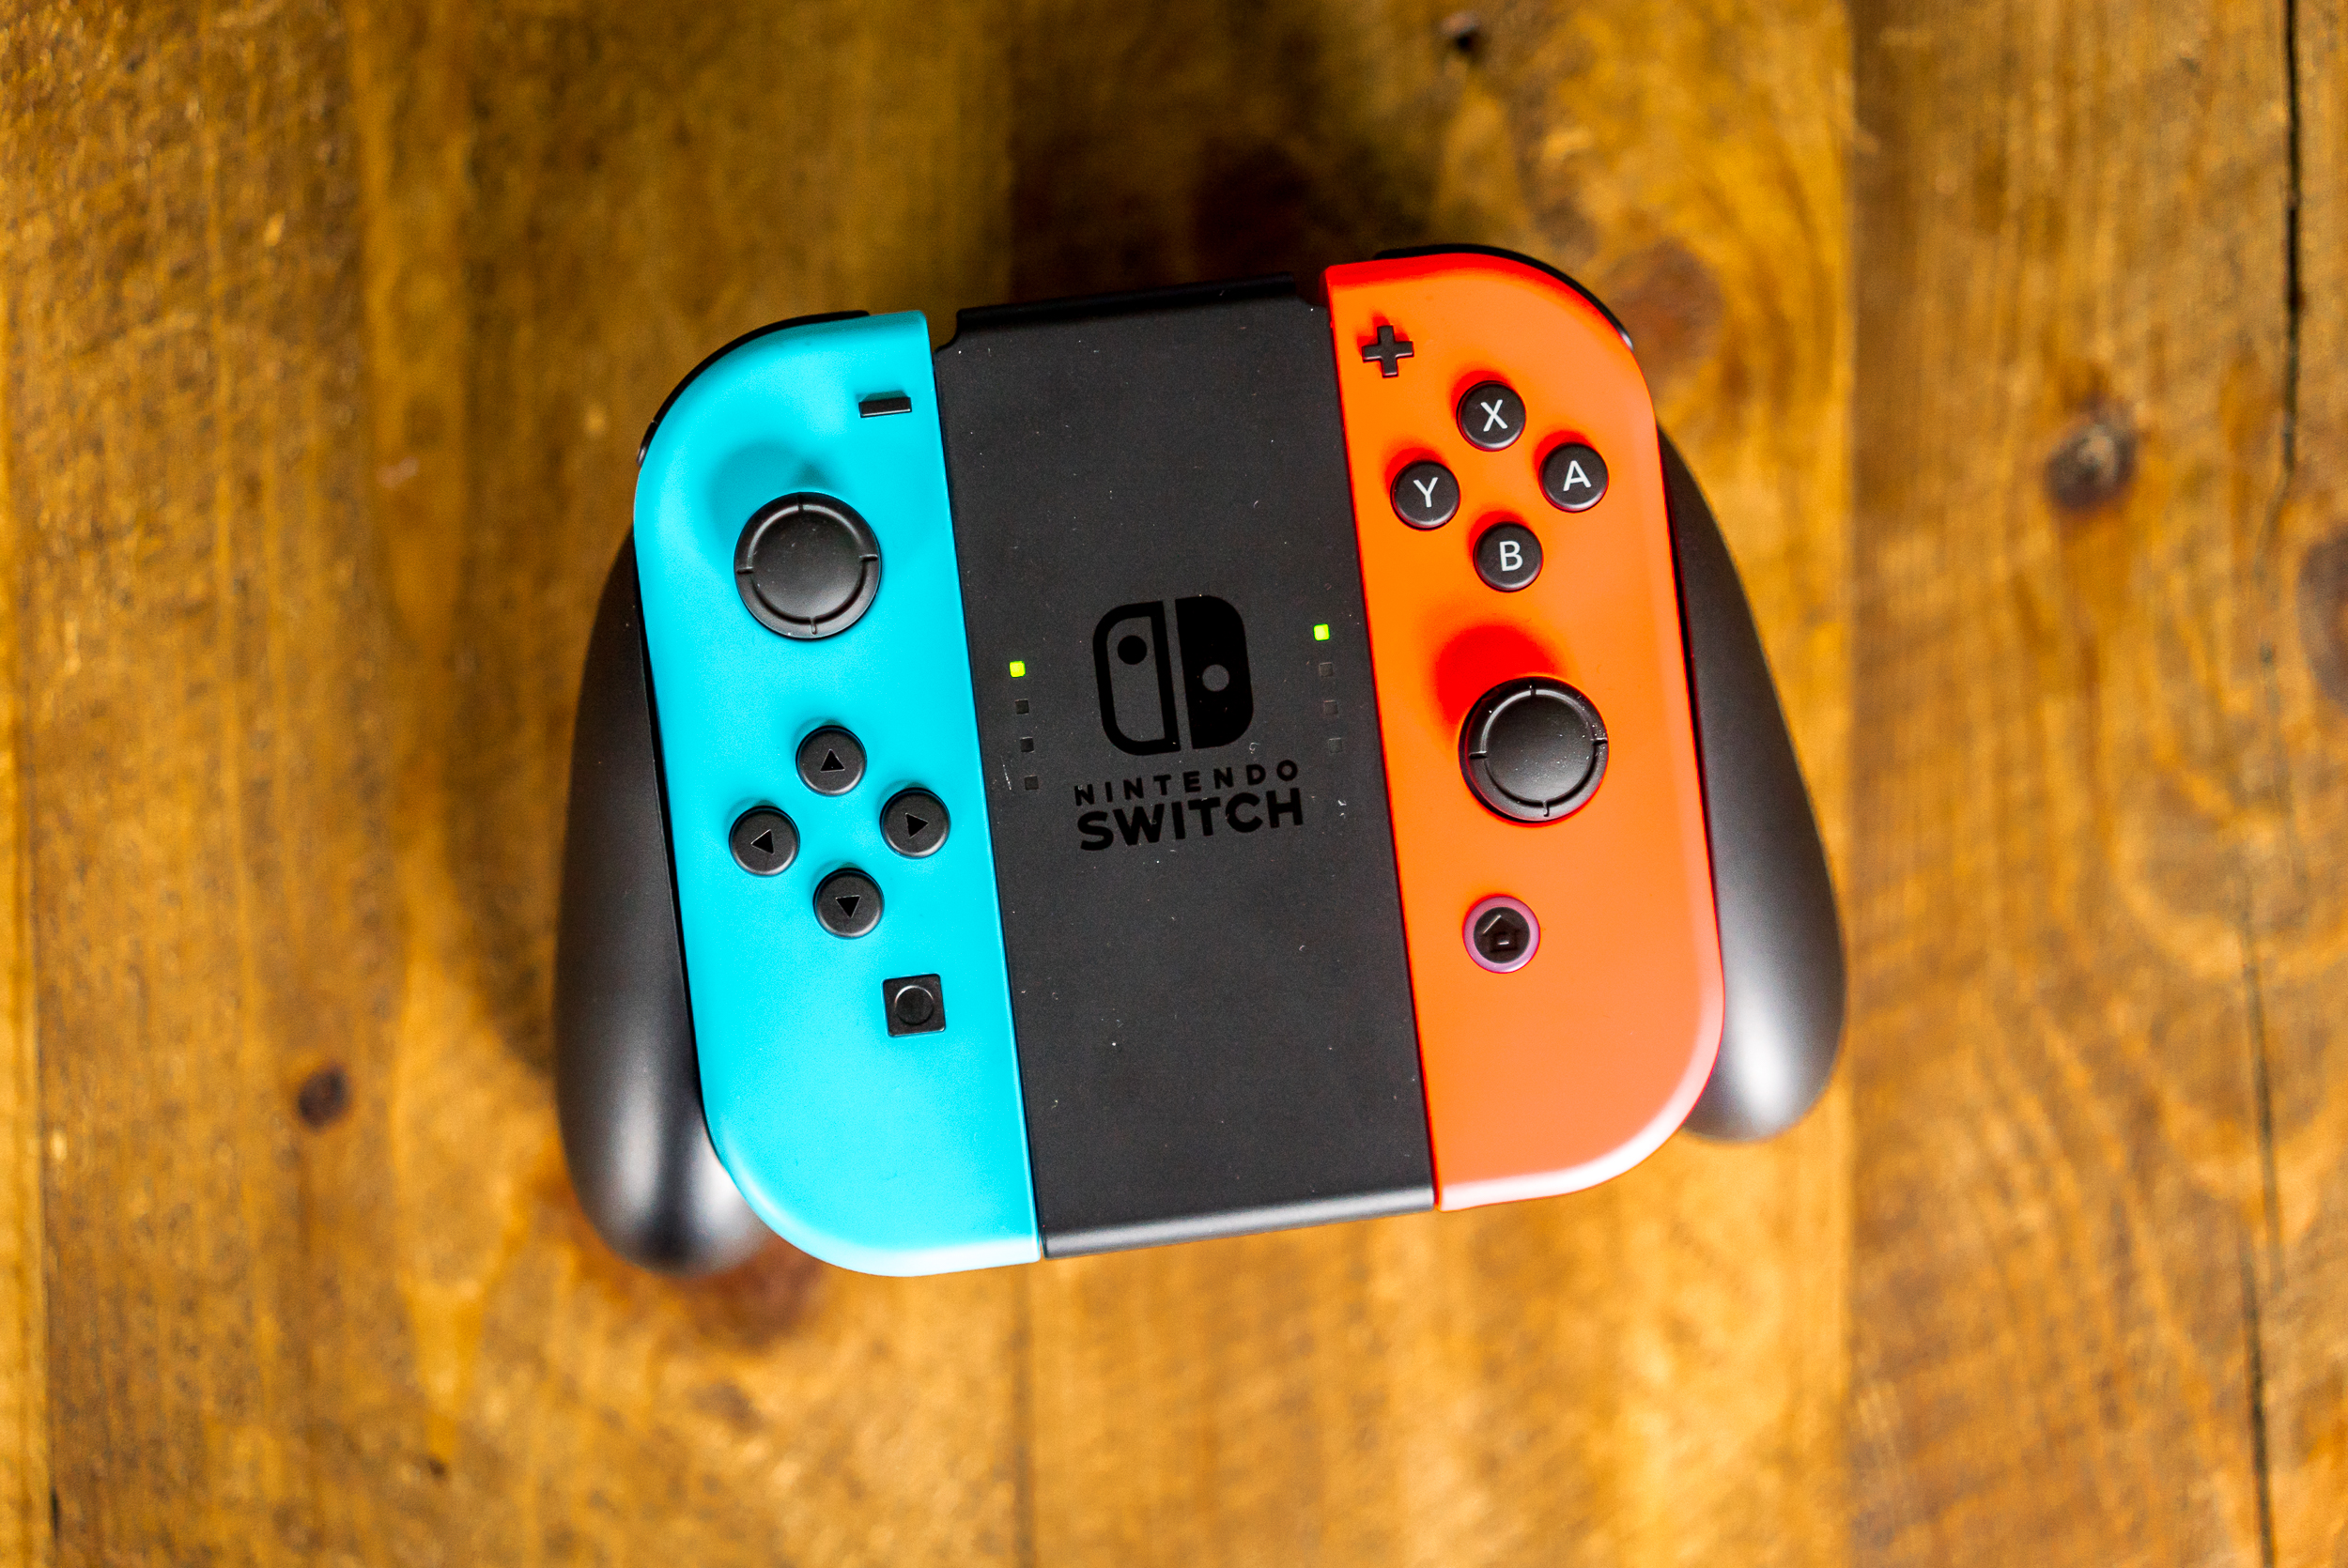 The Nintendo Switch's Joy-Con controllers in their Grip cradle.